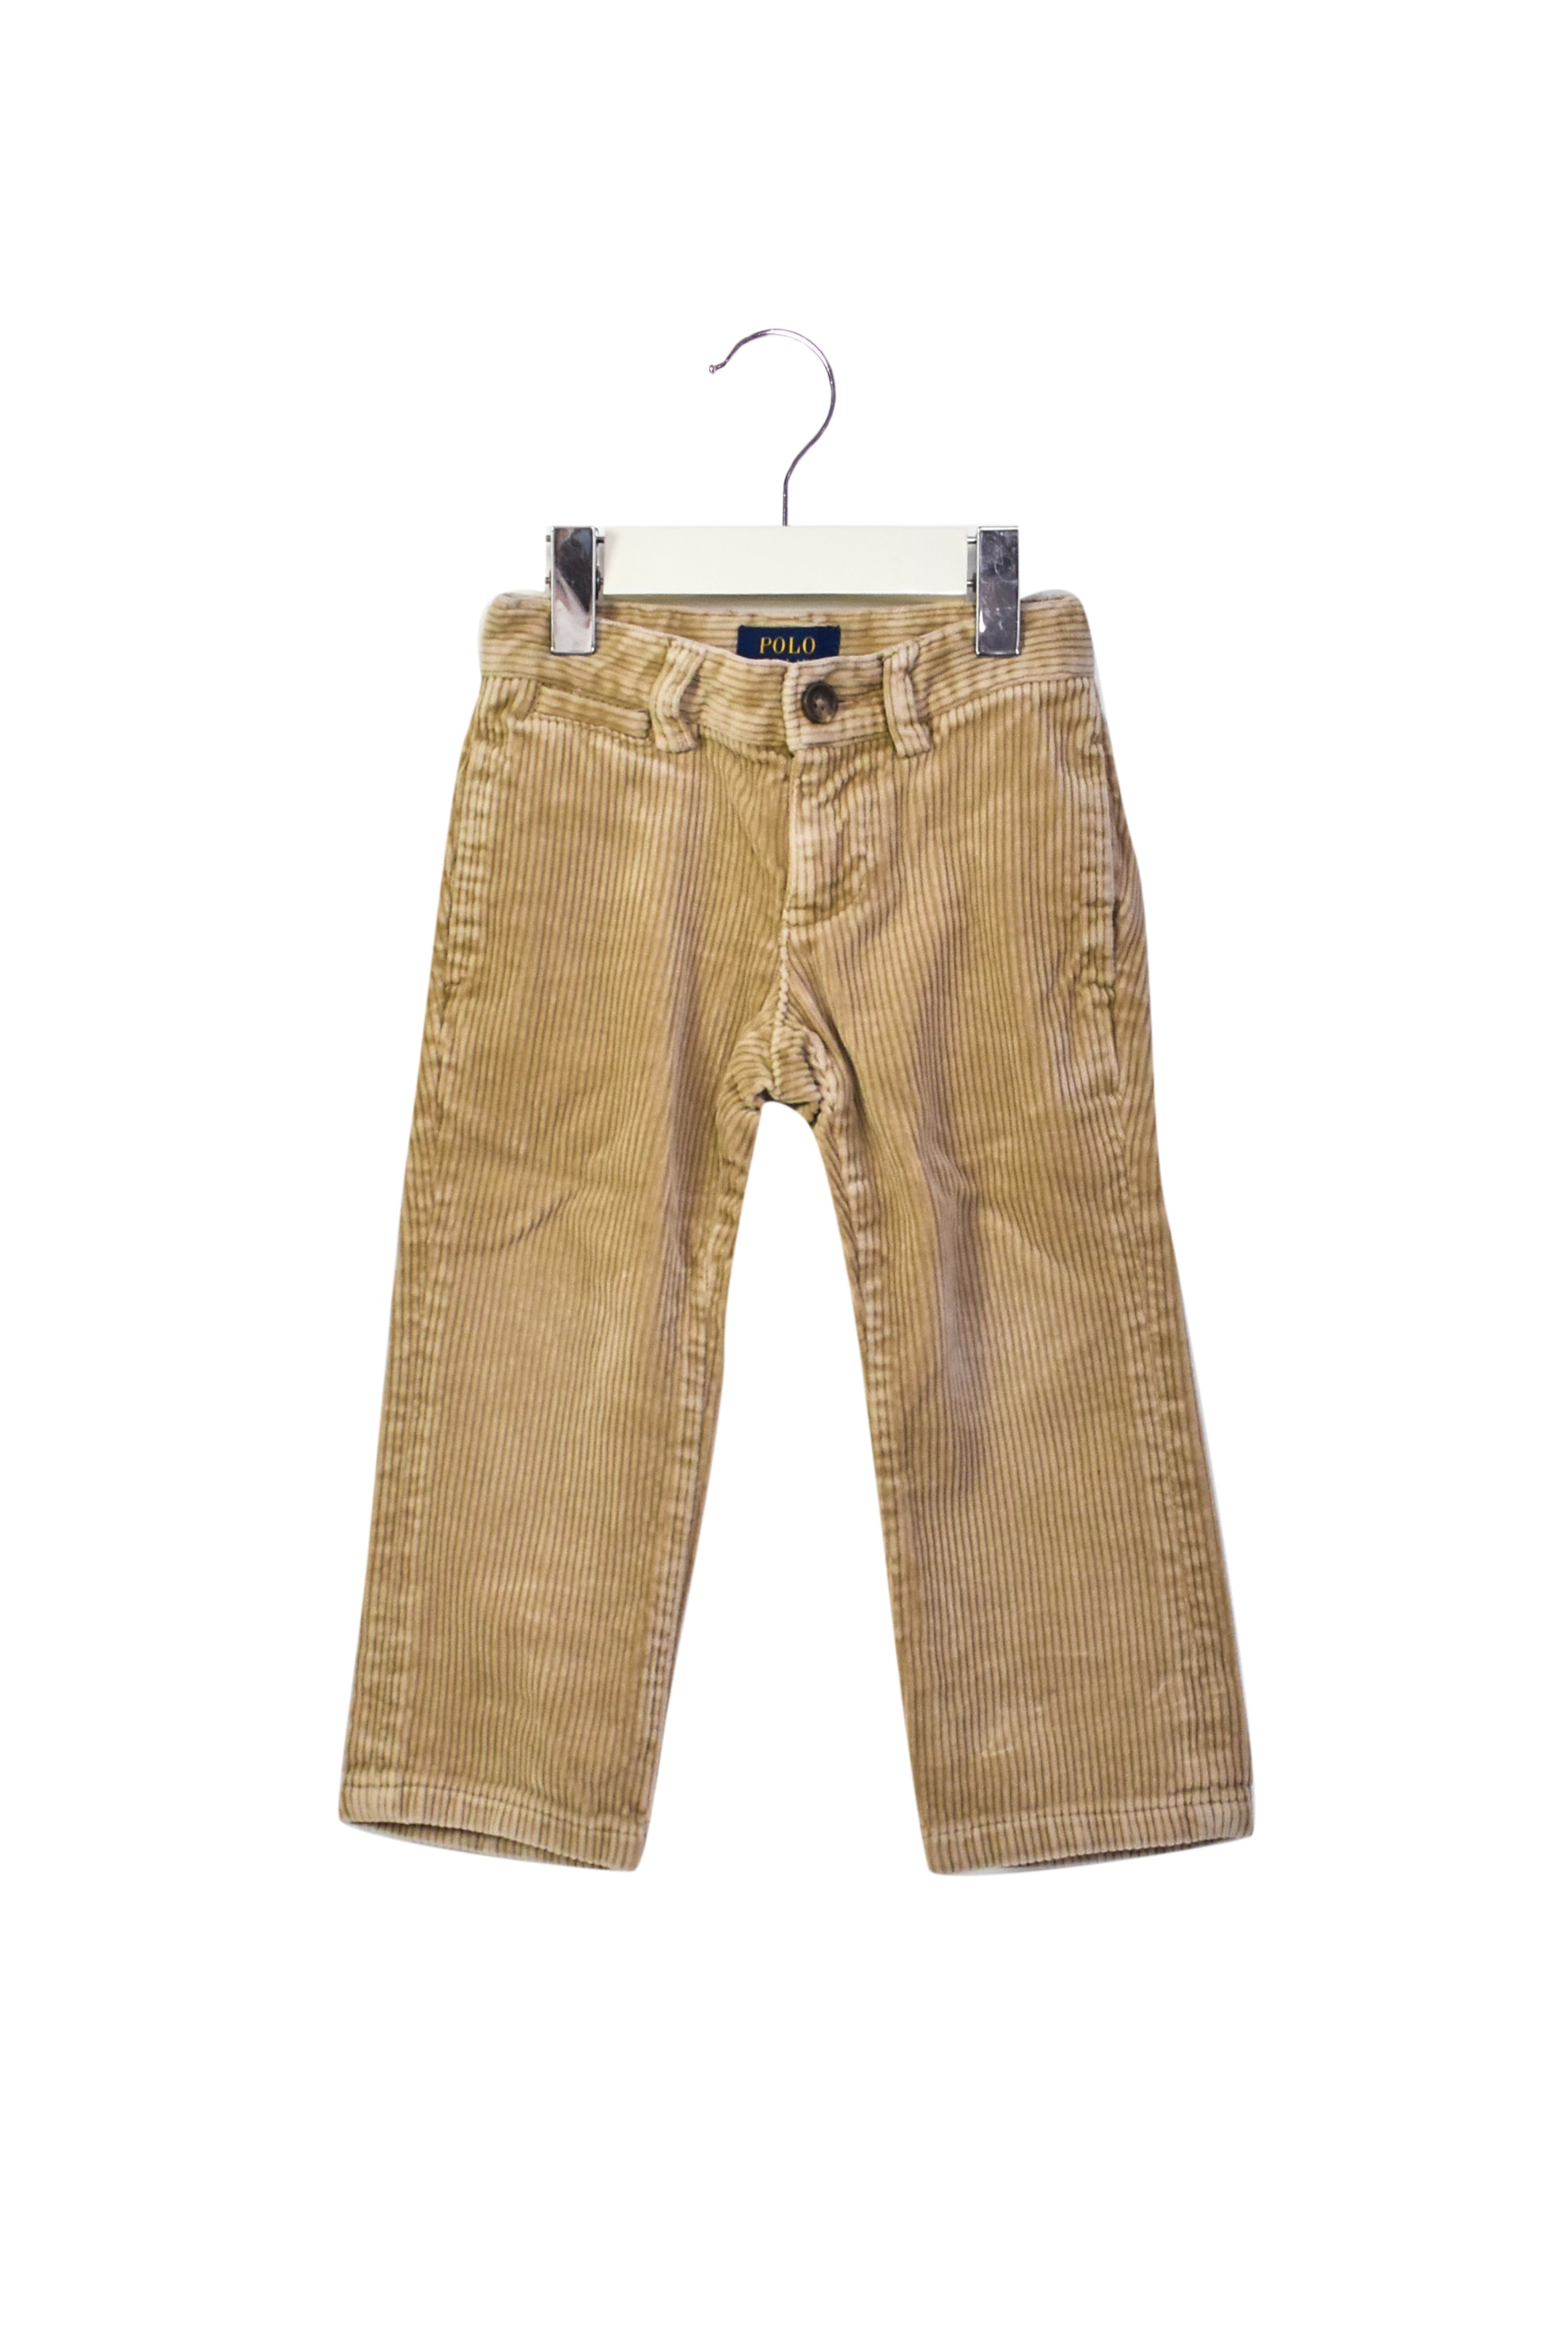 10013696 Polo Ralph Lauren Baby ~ Pants 2T at Retykle